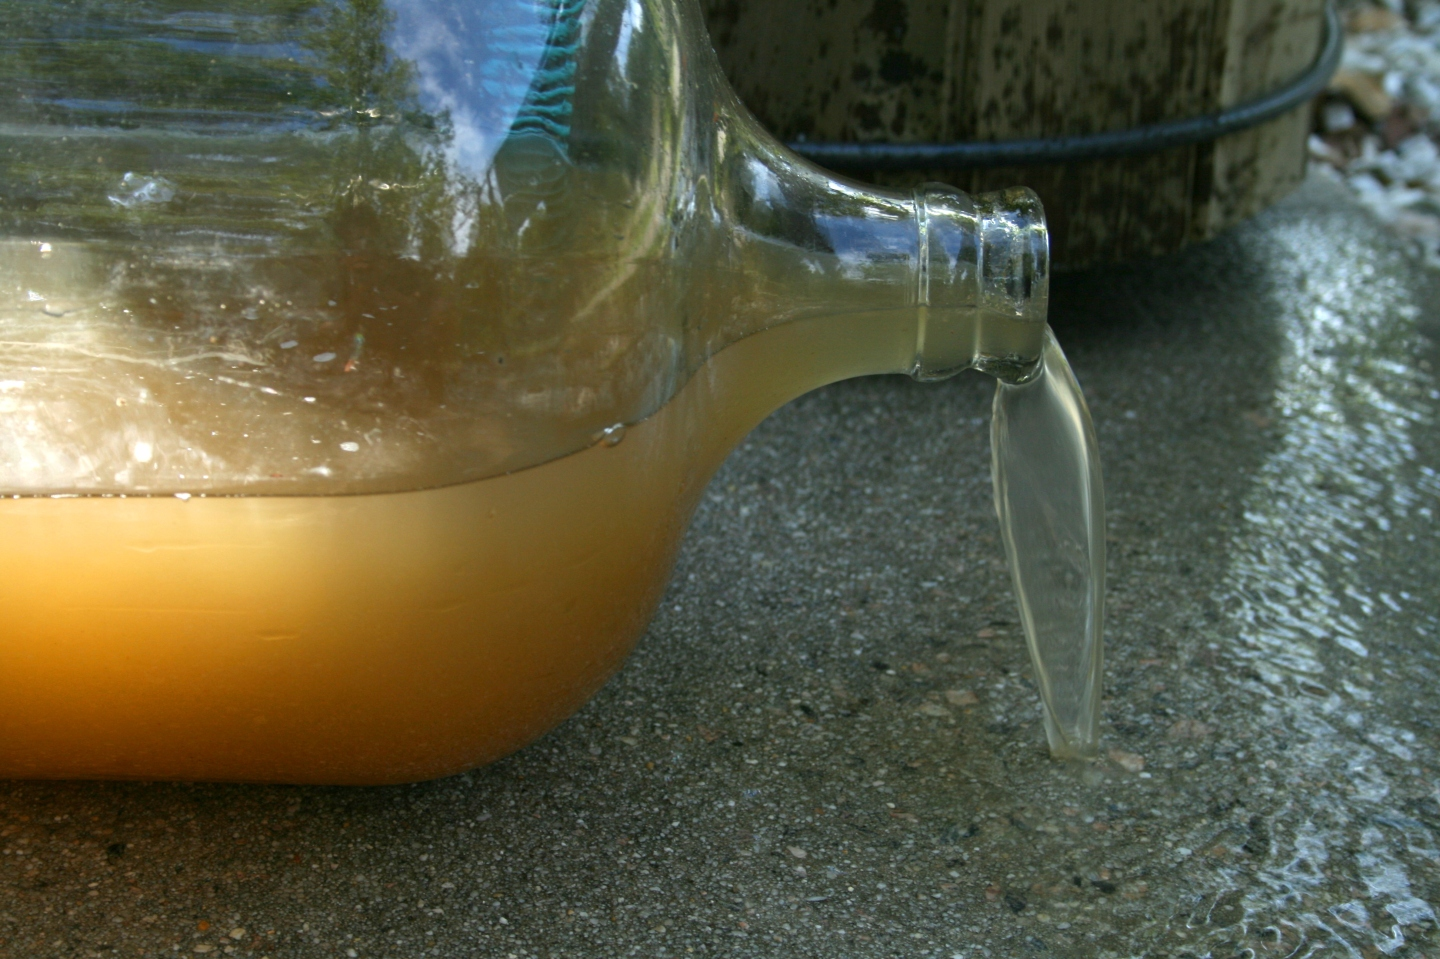 2008-09-20_Dirty_water_spilling_from_a_bottle-2